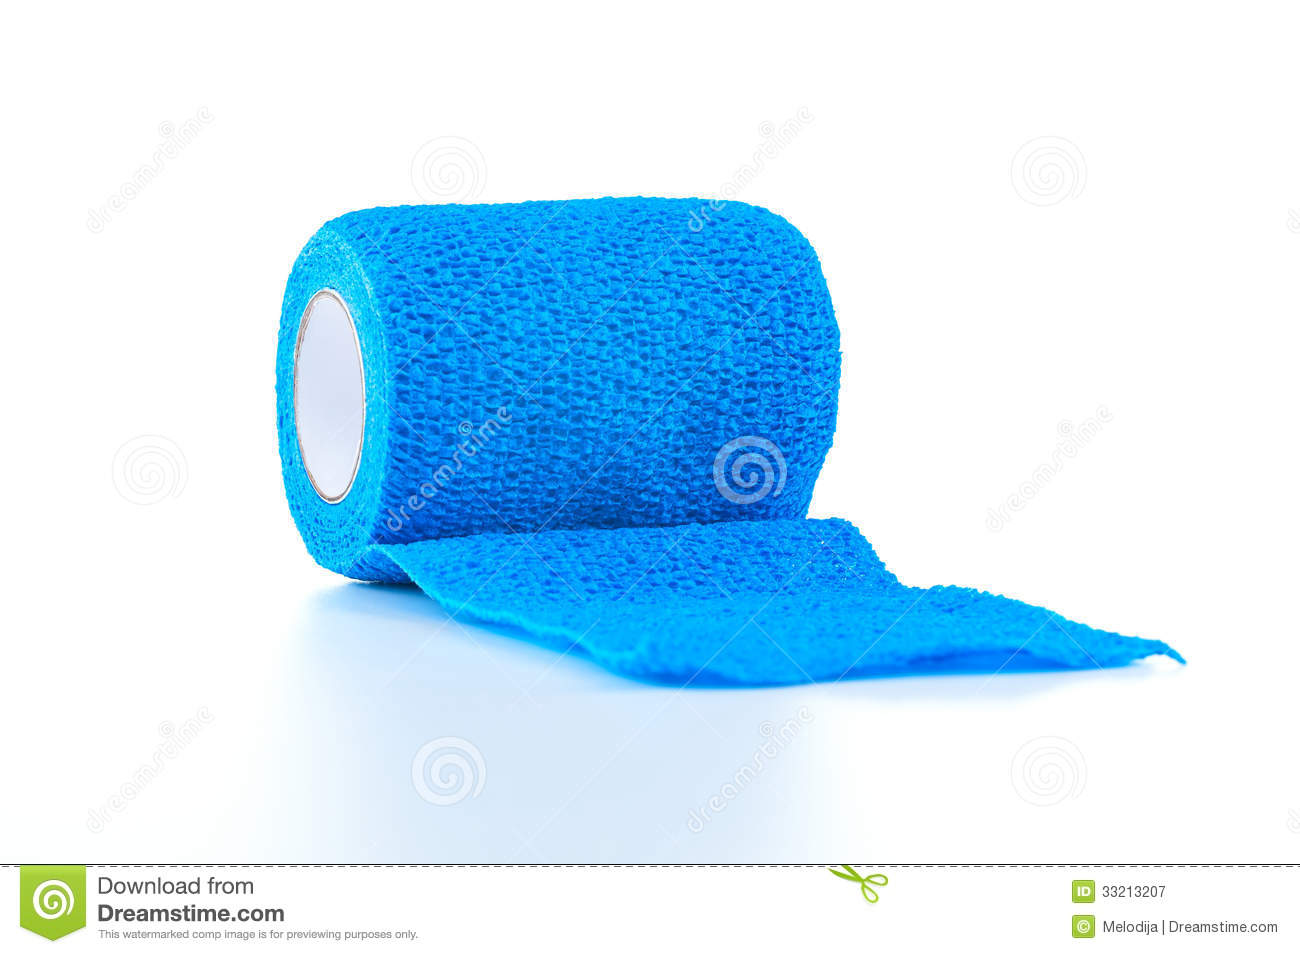 First Aid Compression Bandage